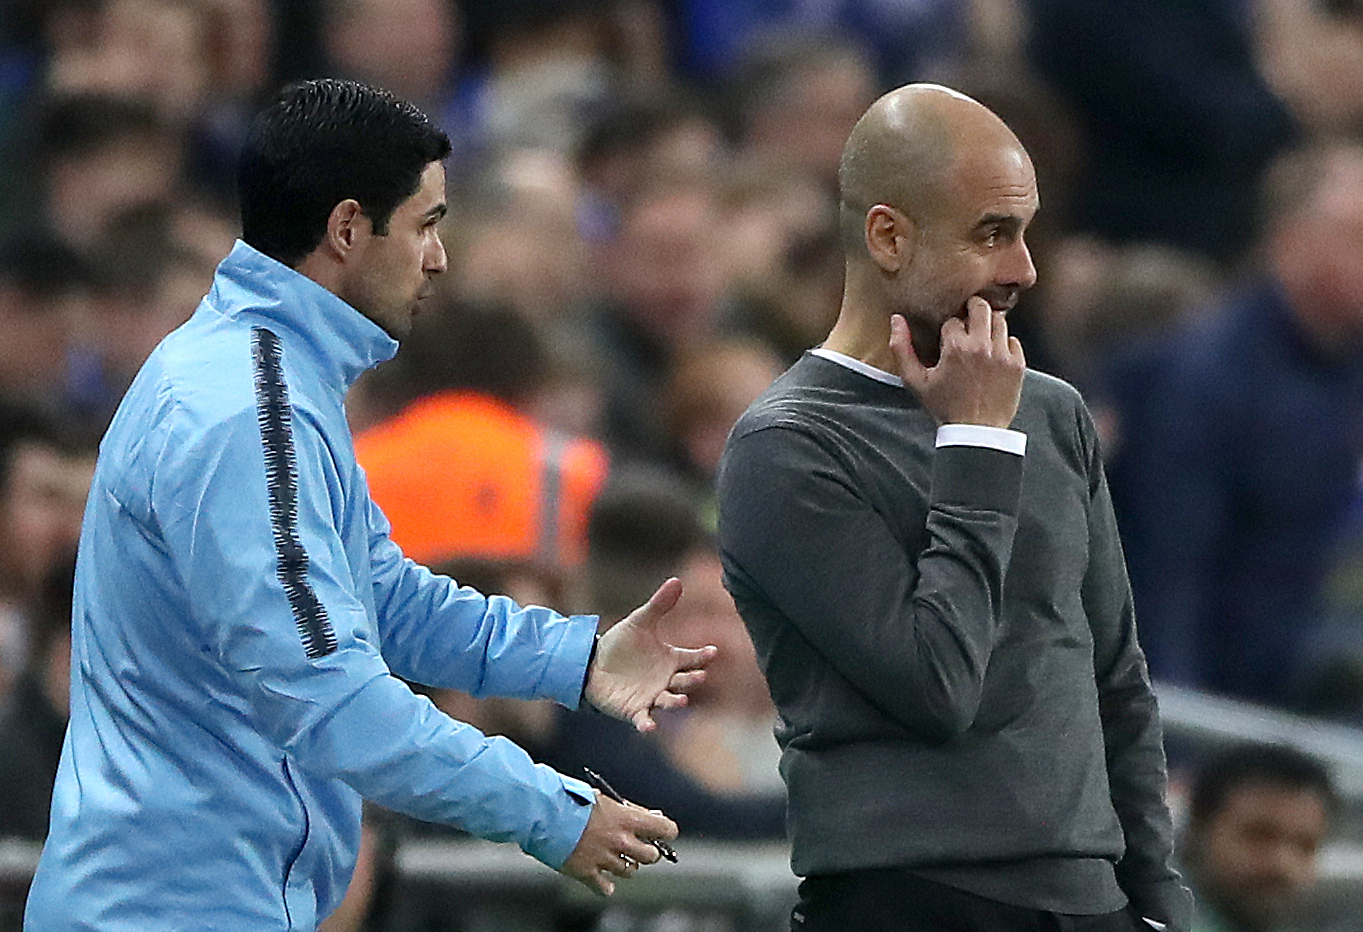 Pep Guardiola shares his thoughts on Mikel Arteta's start at Arsenal